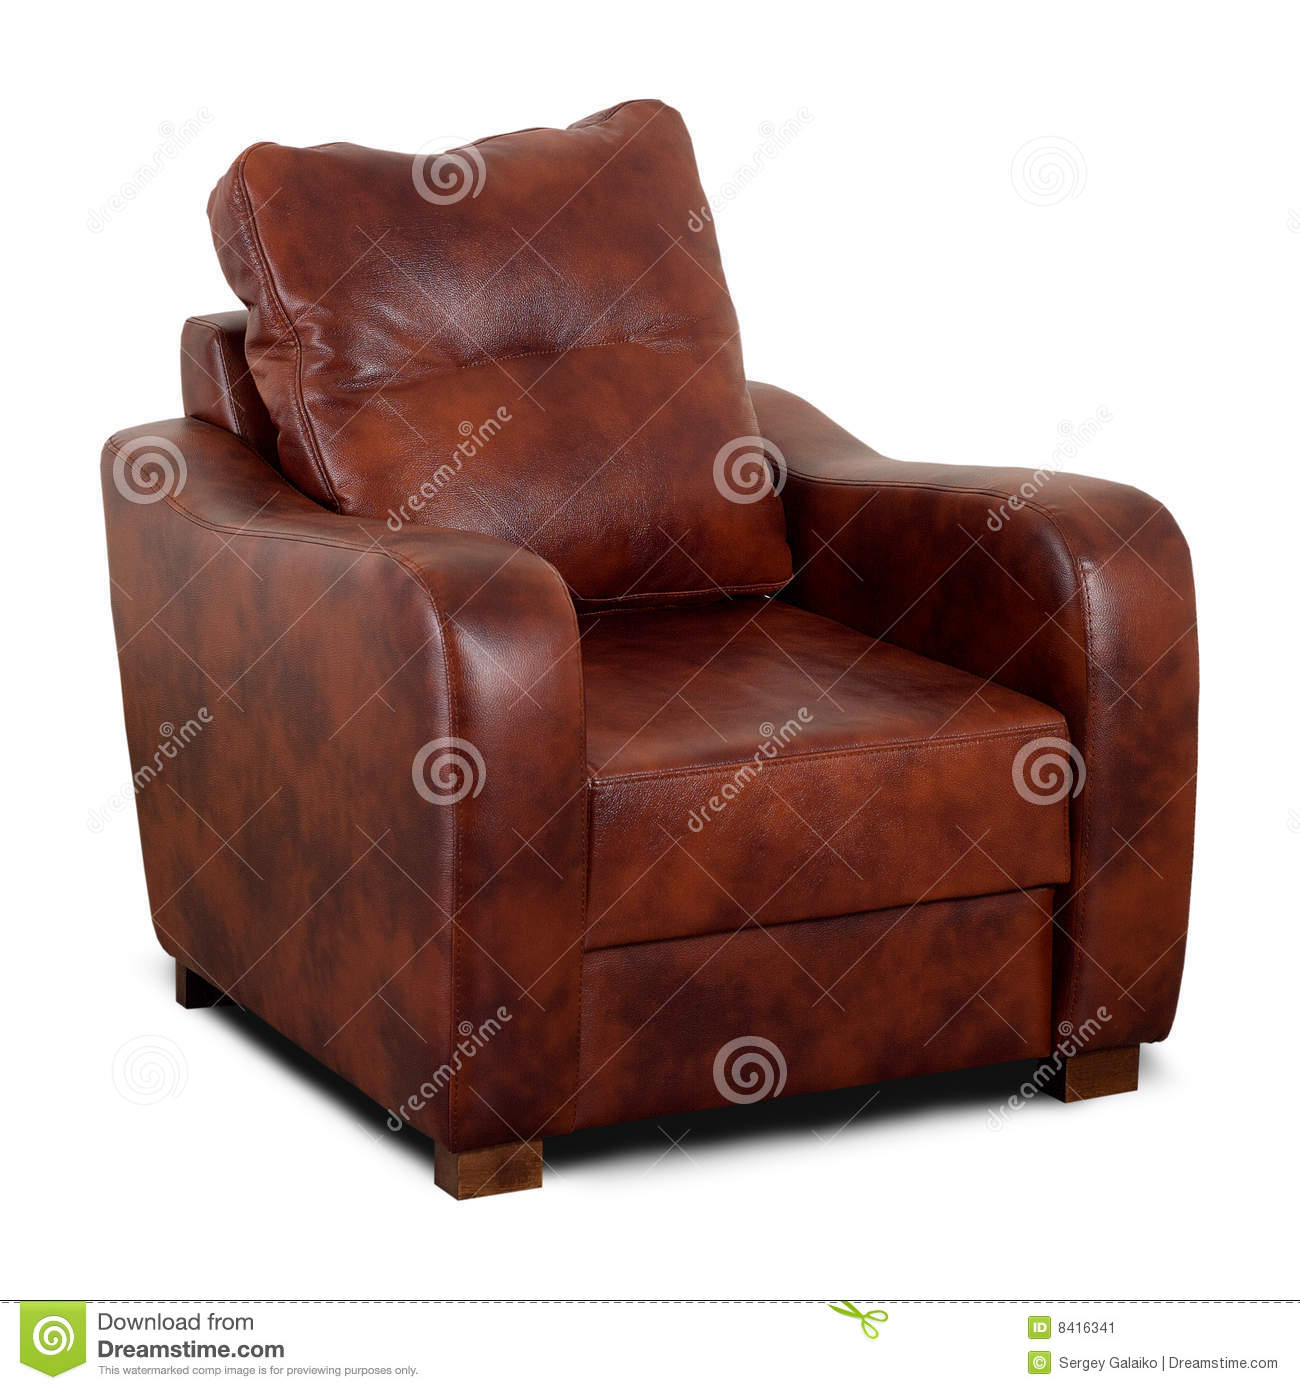 brown leather sofa isolated - photo #25